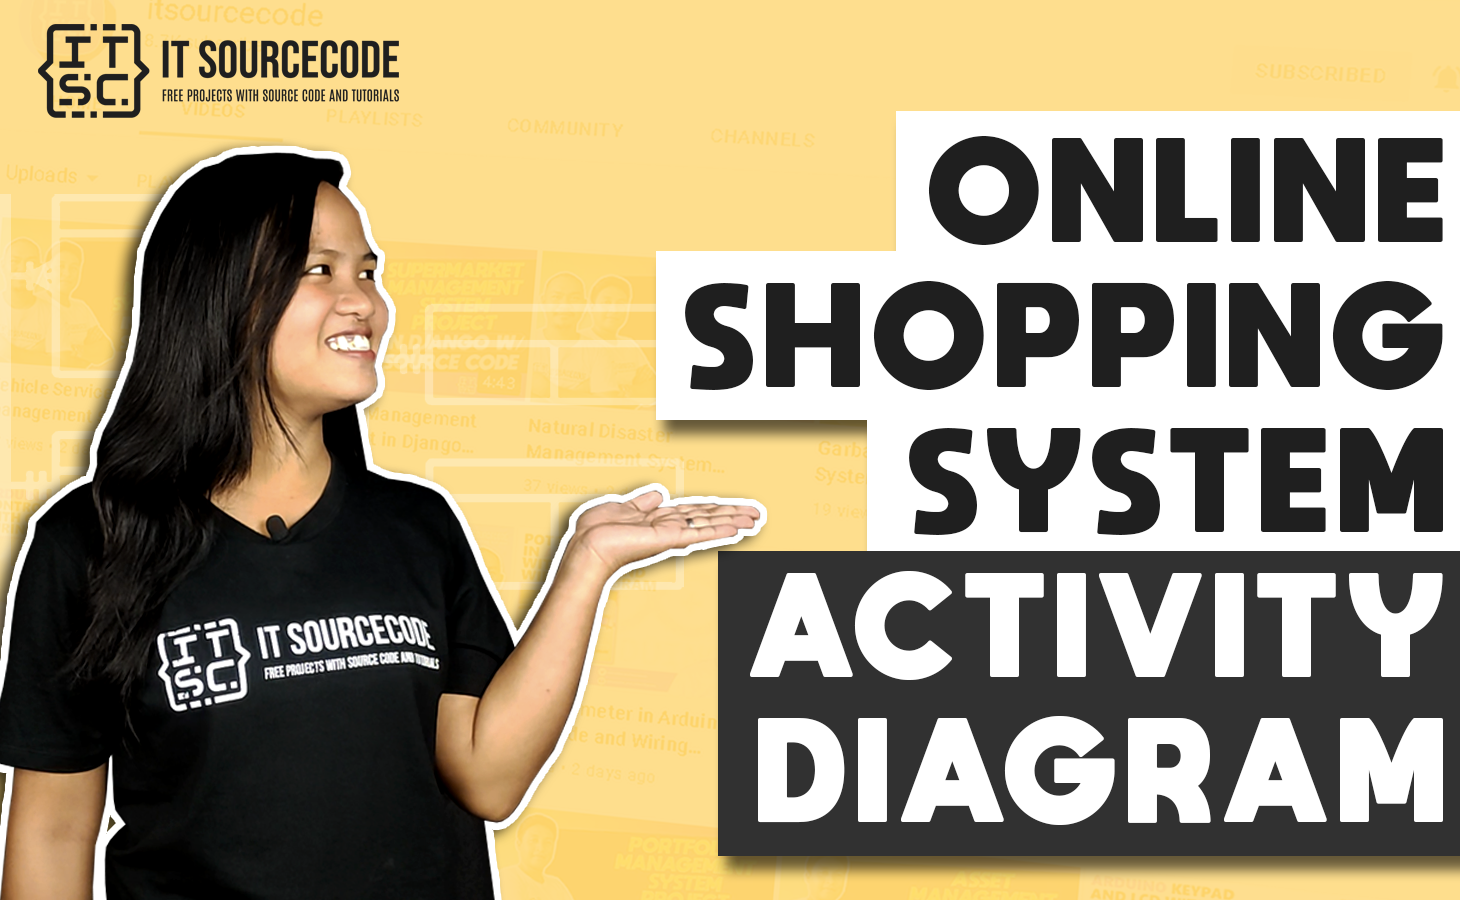 Online Shopping System Activity Diagram